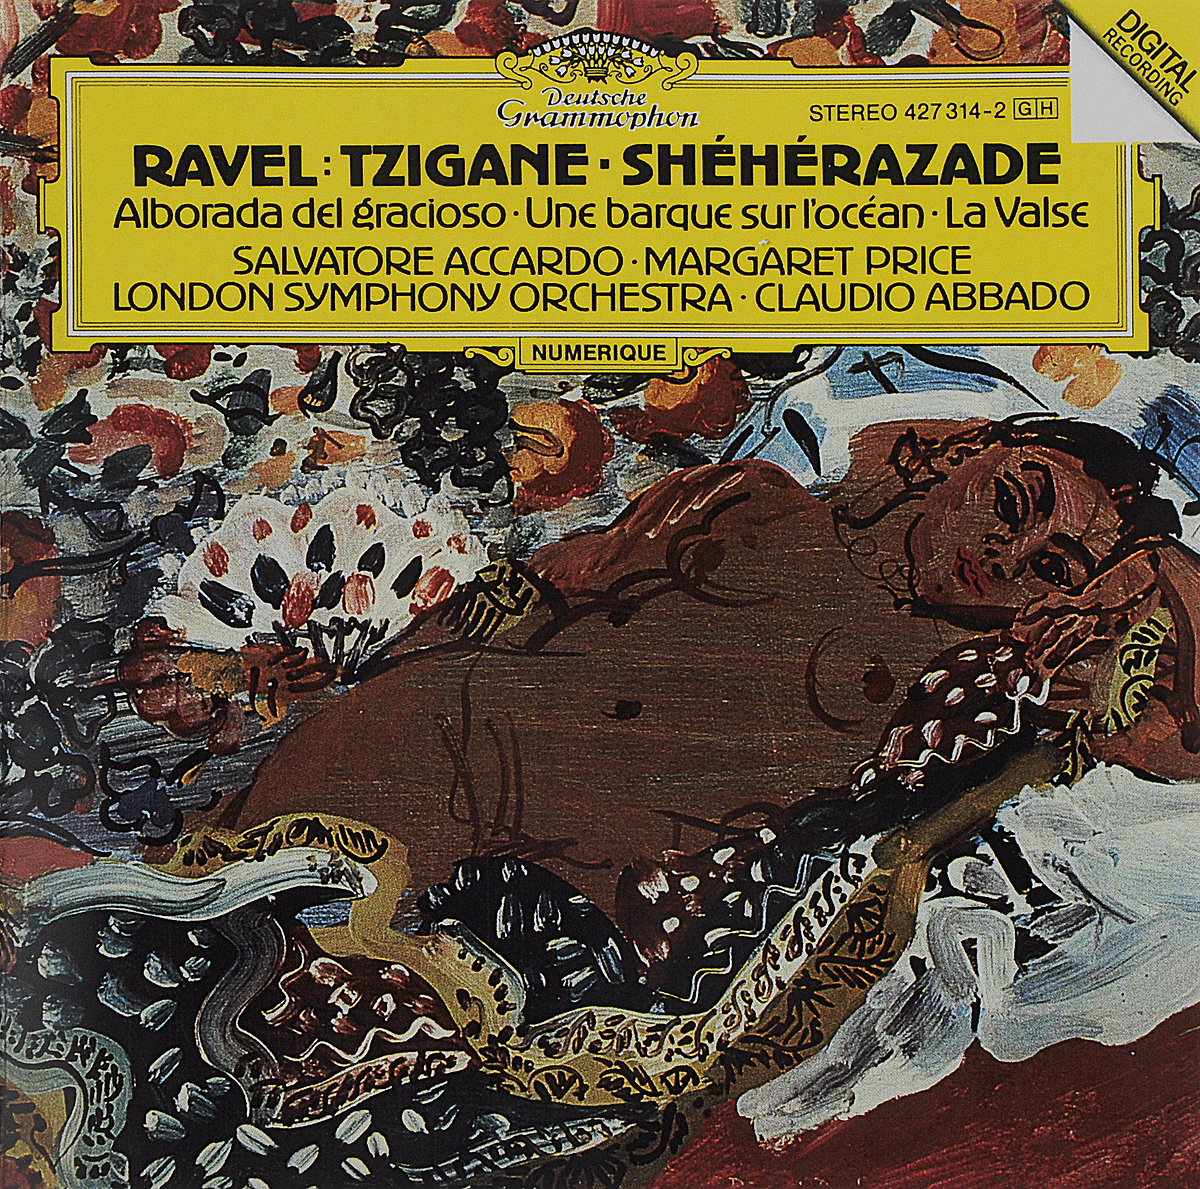 The London Symphony Orchestra,Клаудио Аббадо,Сальваторе Аккардо,Маргарет Прайс Claudio Abbado. Ravel. Tzigane / Sheherazade / La Valse claudio abbado sting prokofiev peter and the wolf